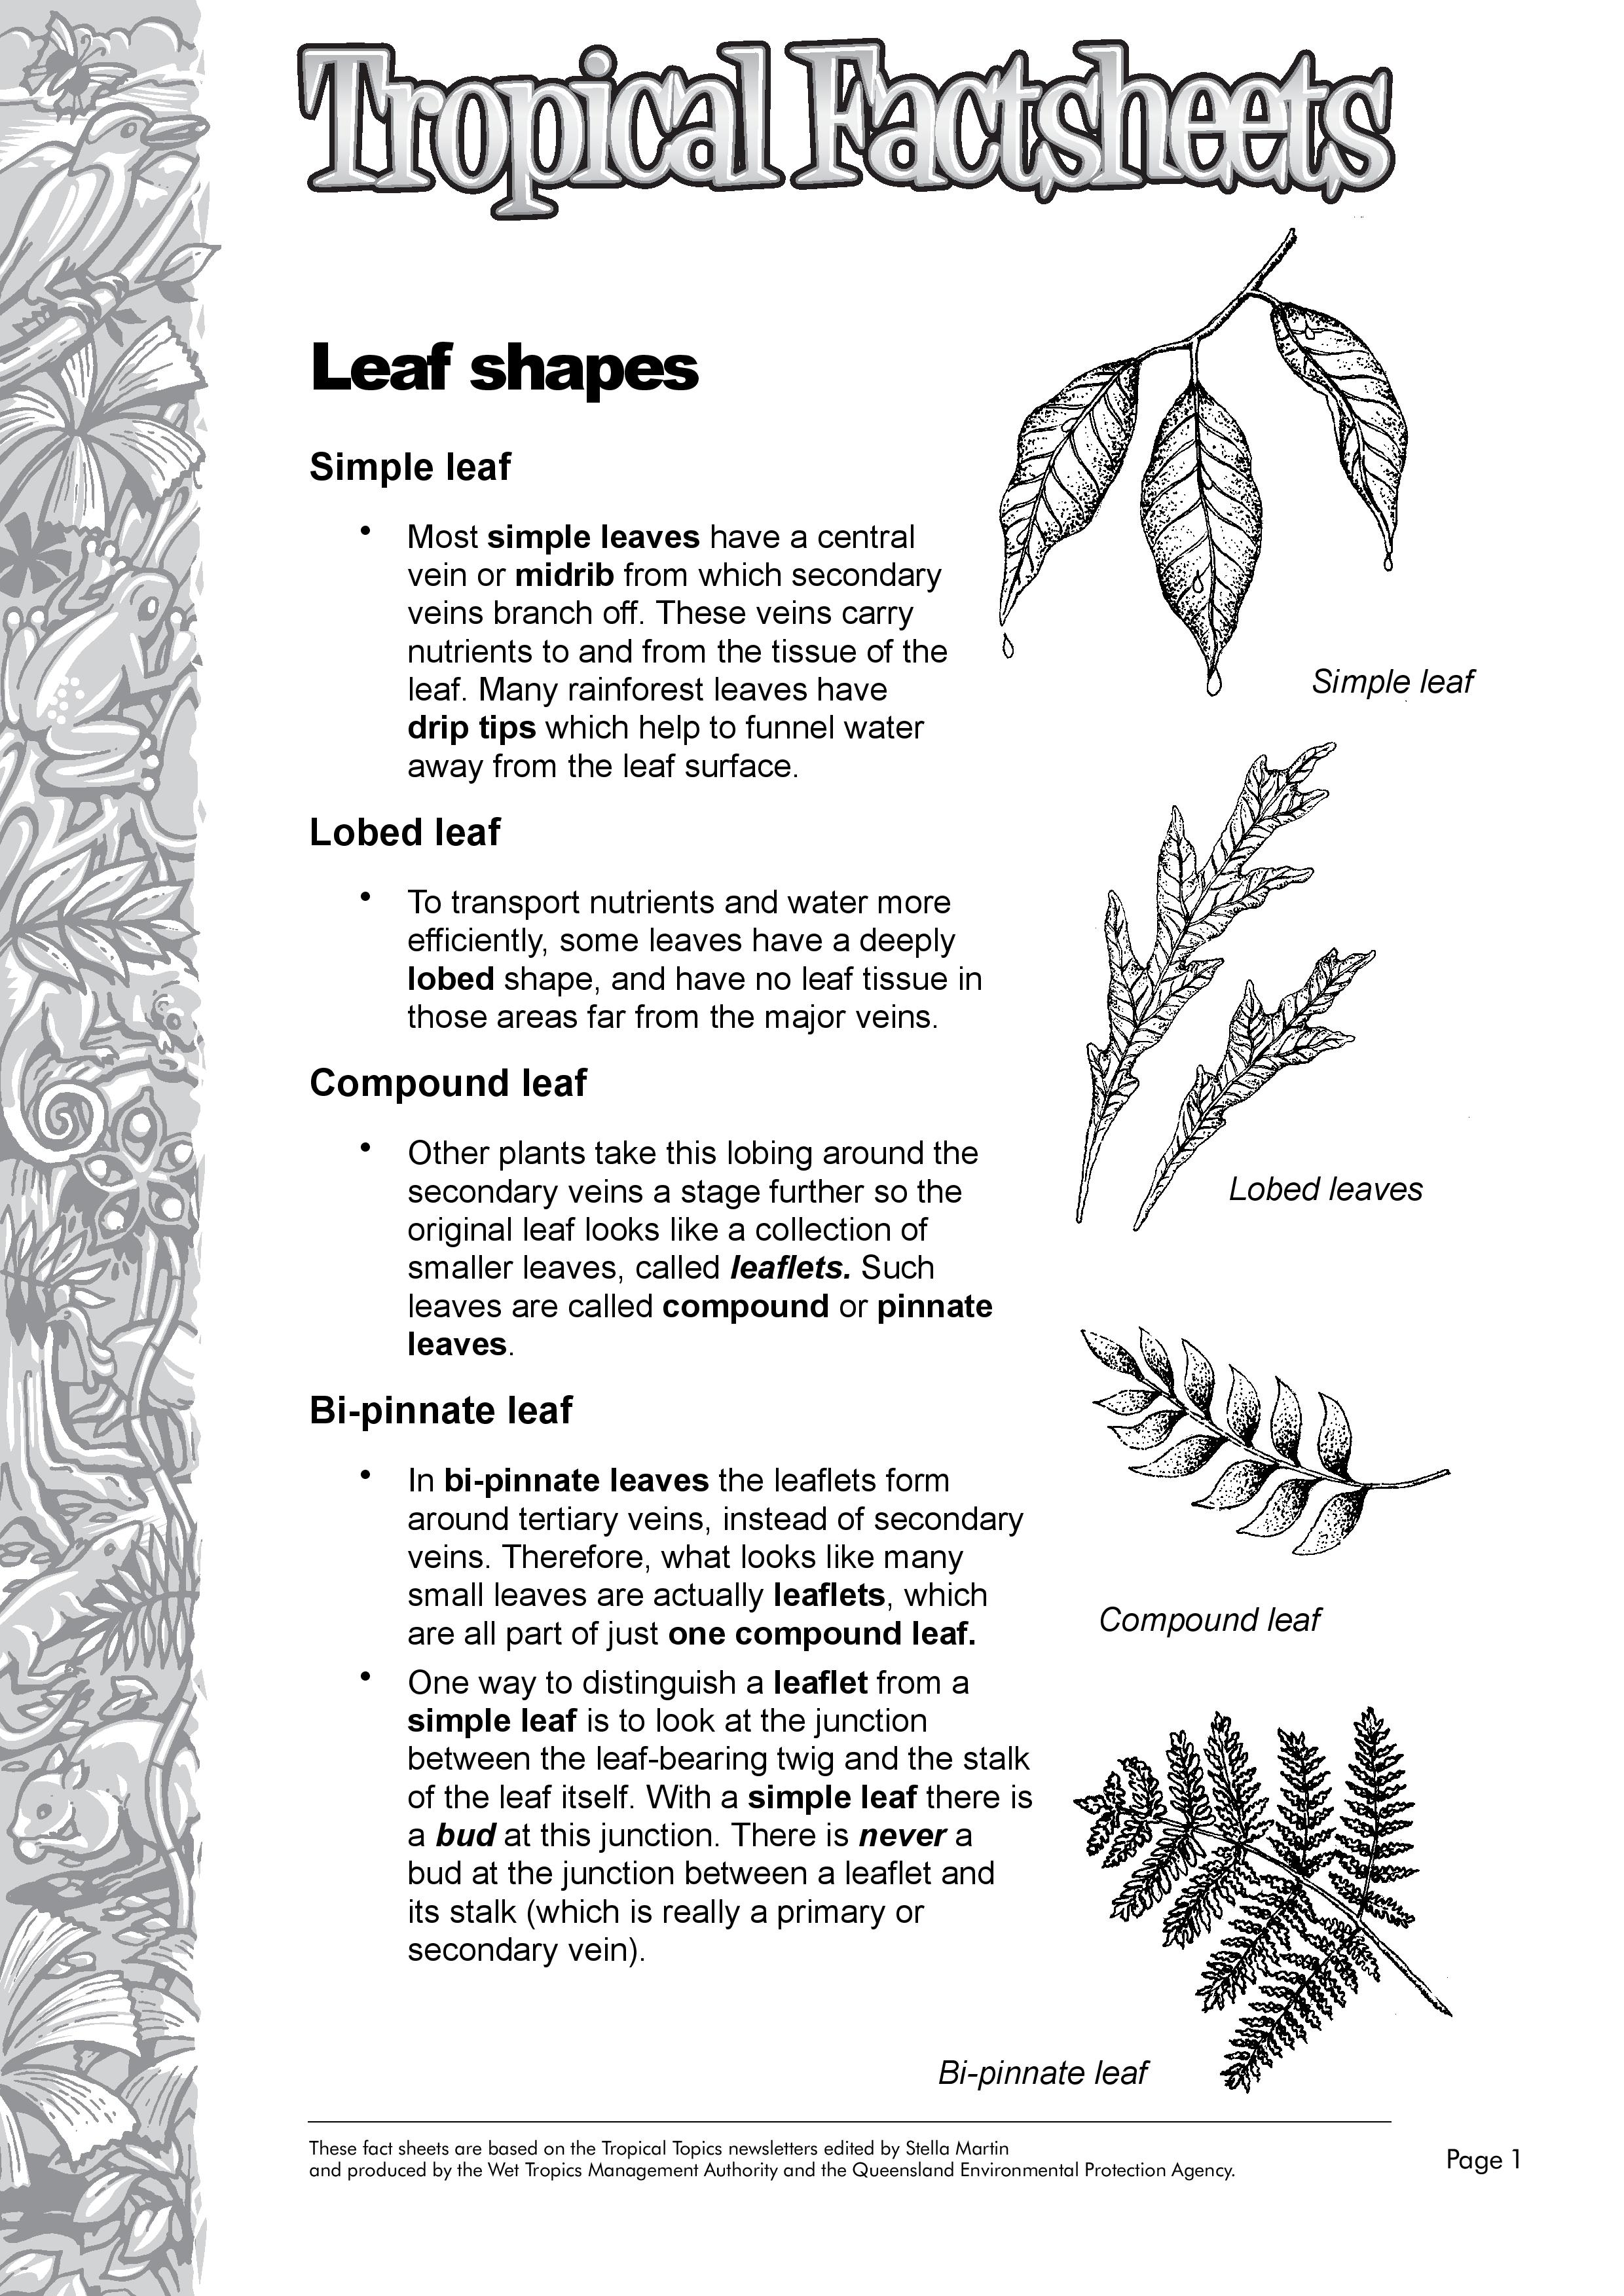 Leaf Shape Factsheet - Rainforest Explorer Photographer: N/A